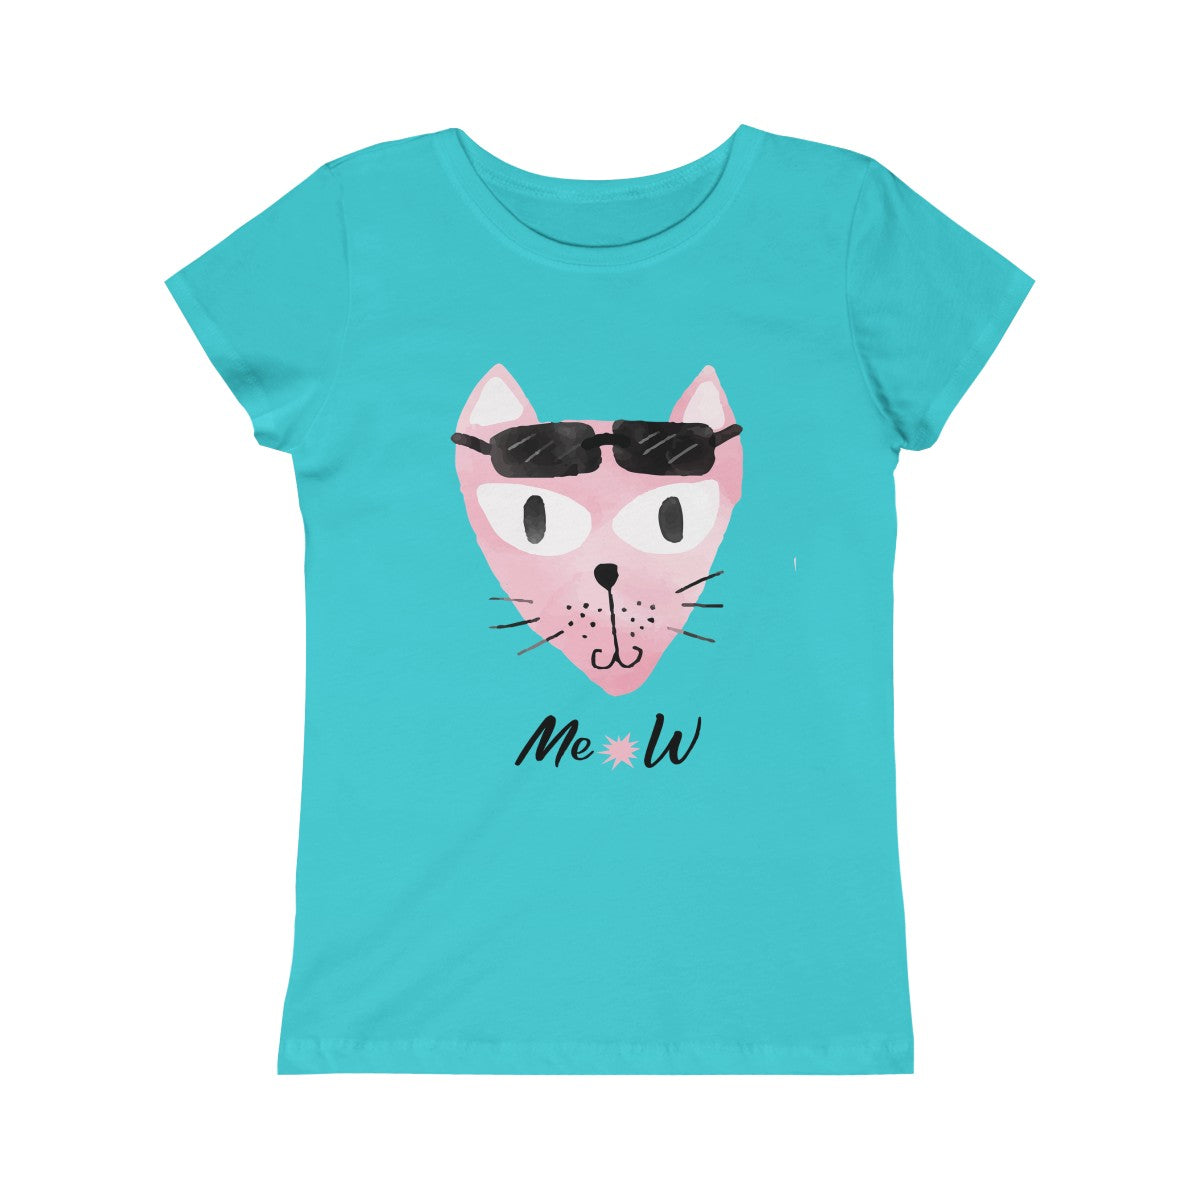 Girls Princess Tee - mysterynb